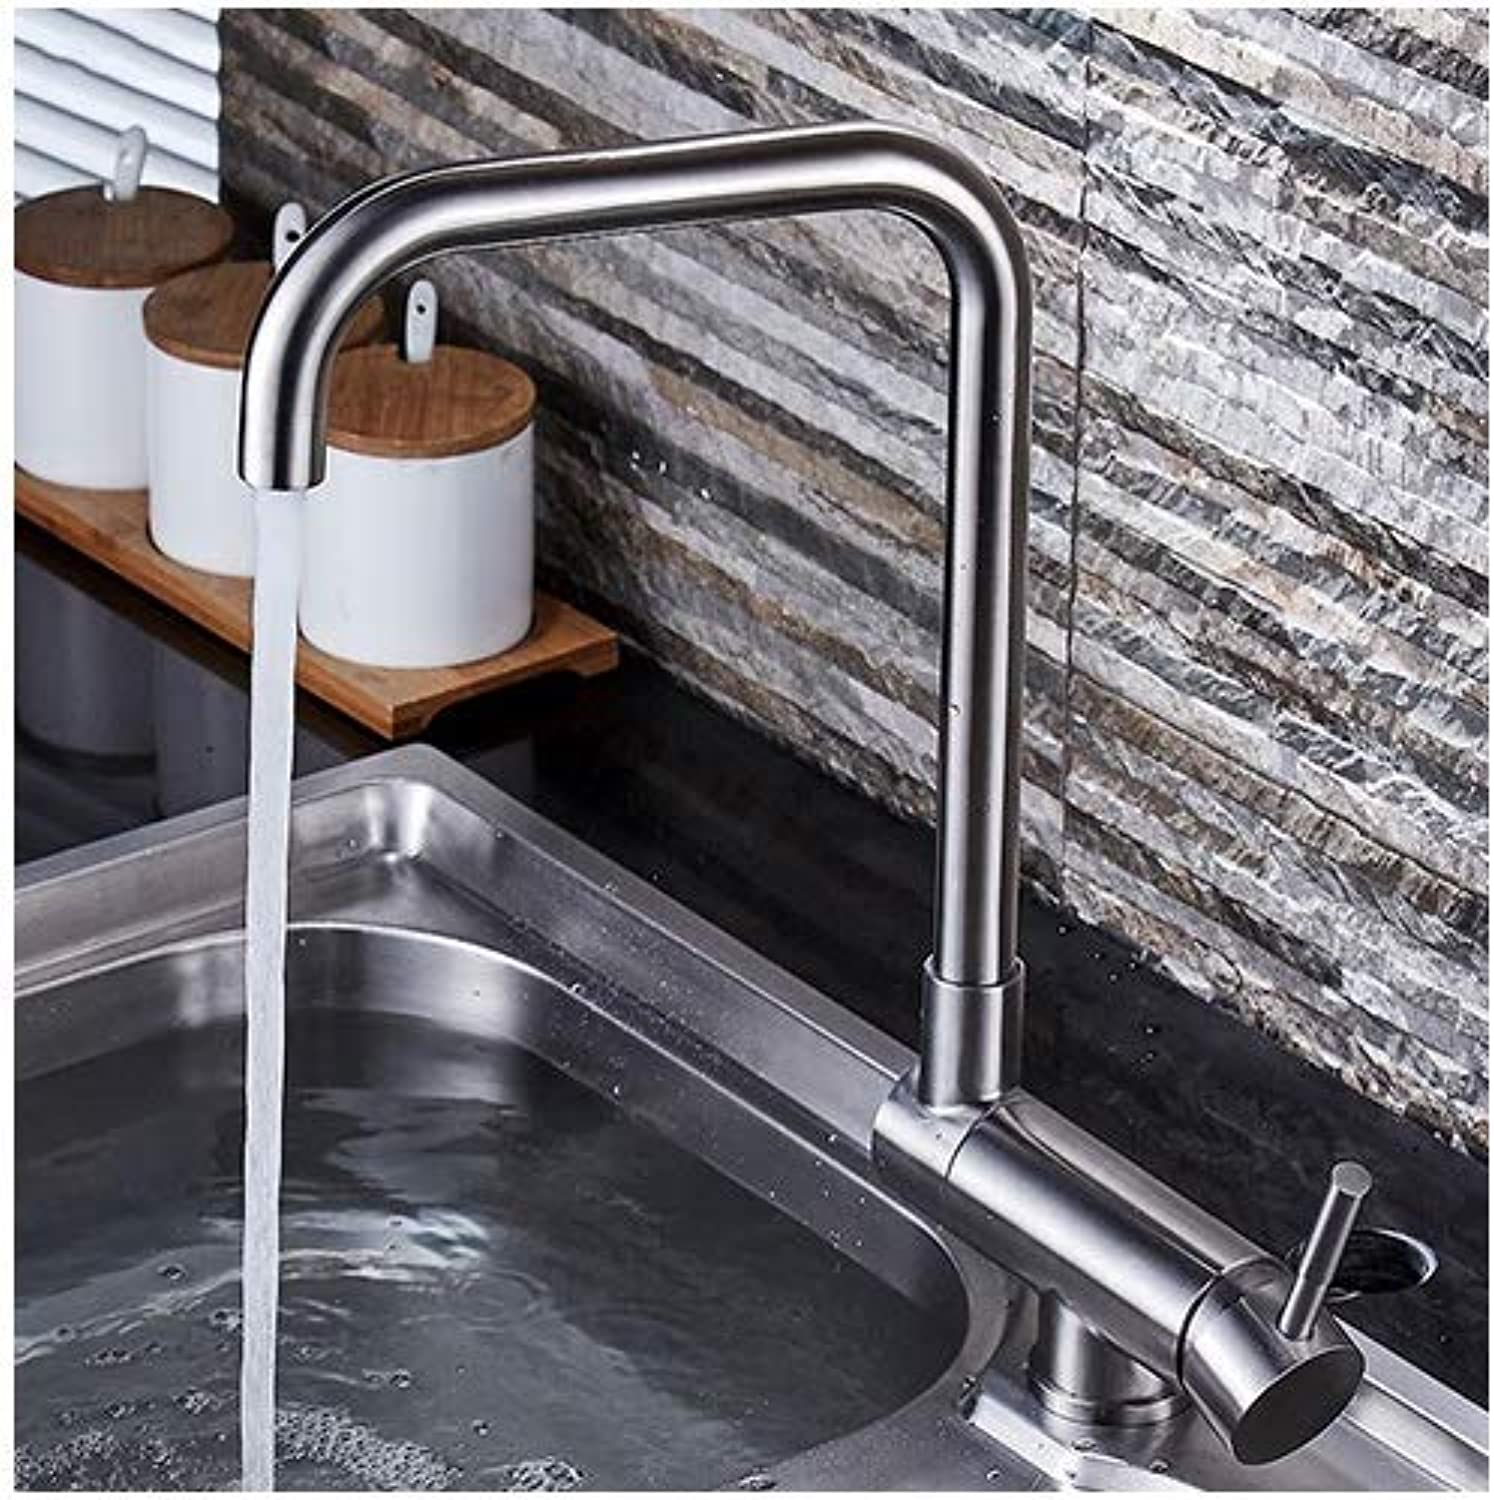 Modern Minimalist 304 Stainless Steel Kitchen Sink Hot And Cold Tap Creative Folding Sink Basin Faucet Swivel Faucet